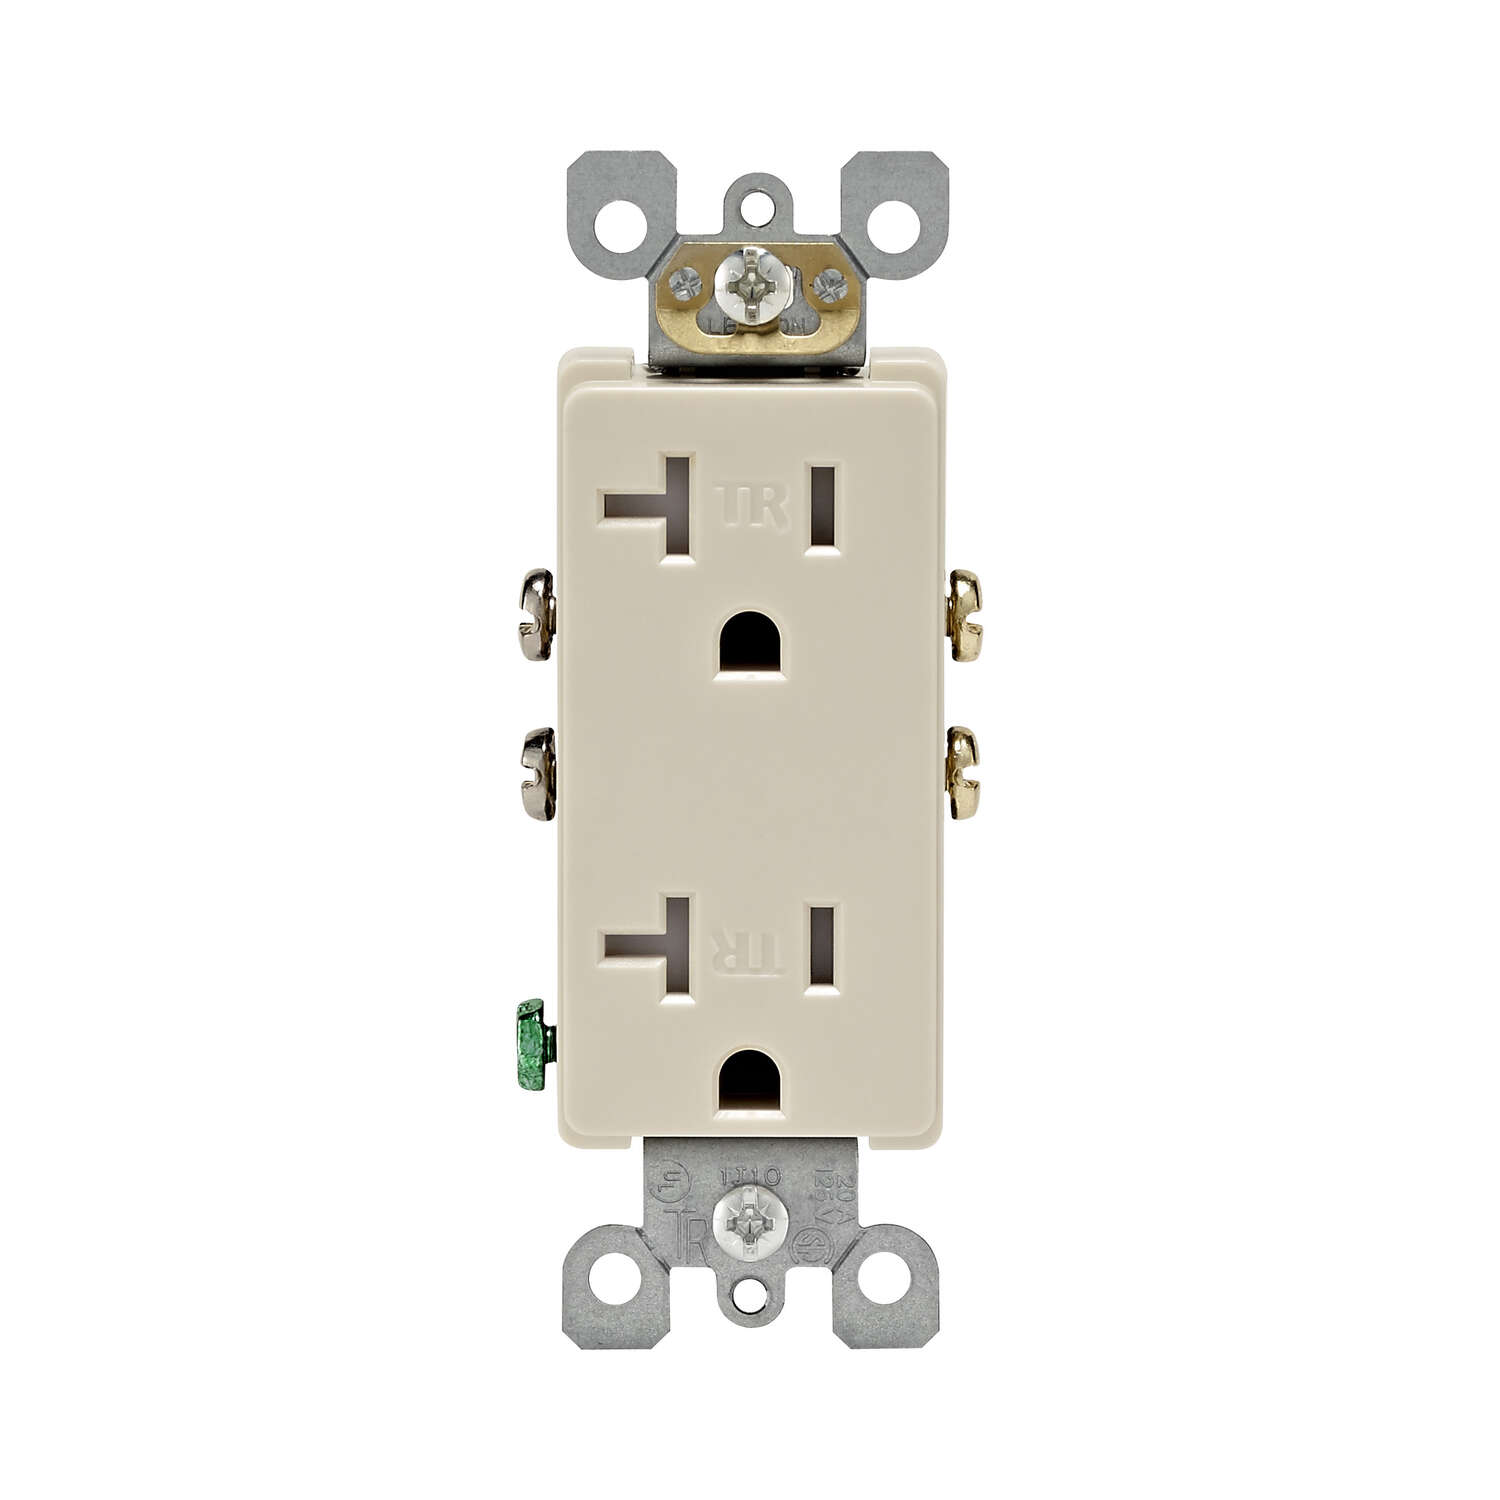 Leviton Decora 20 amps 125 volt Light Almond Tamper Resistant Outlet 5-20R